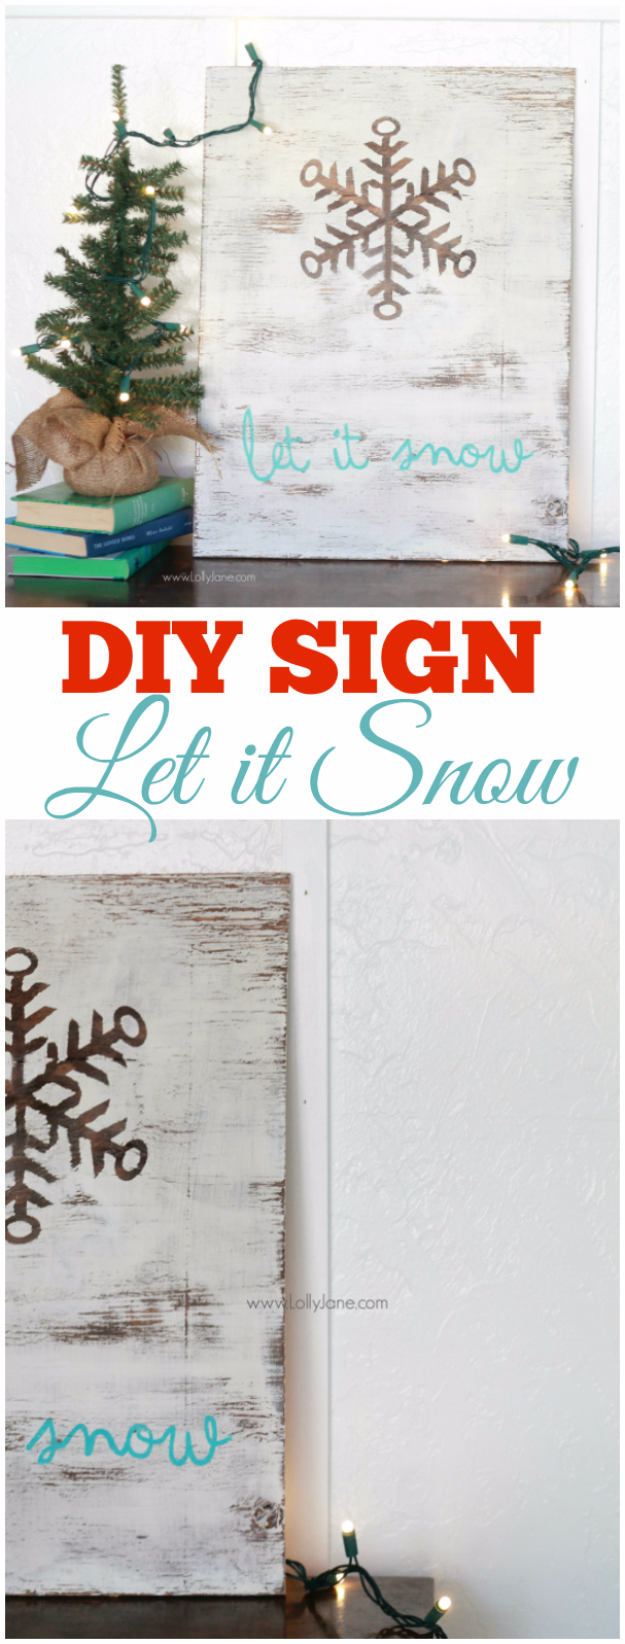 Best DIY Snowflake Decorations, Ornaments and Crafts - DIY Let It Snow Sign - Paper Crafts with Snowflakes, Pipe Cleaner Projects, Mason Jars and Dollar Store Ideas - Easy DIY Ideas to Decorate for Winter#winter #crafts #diy